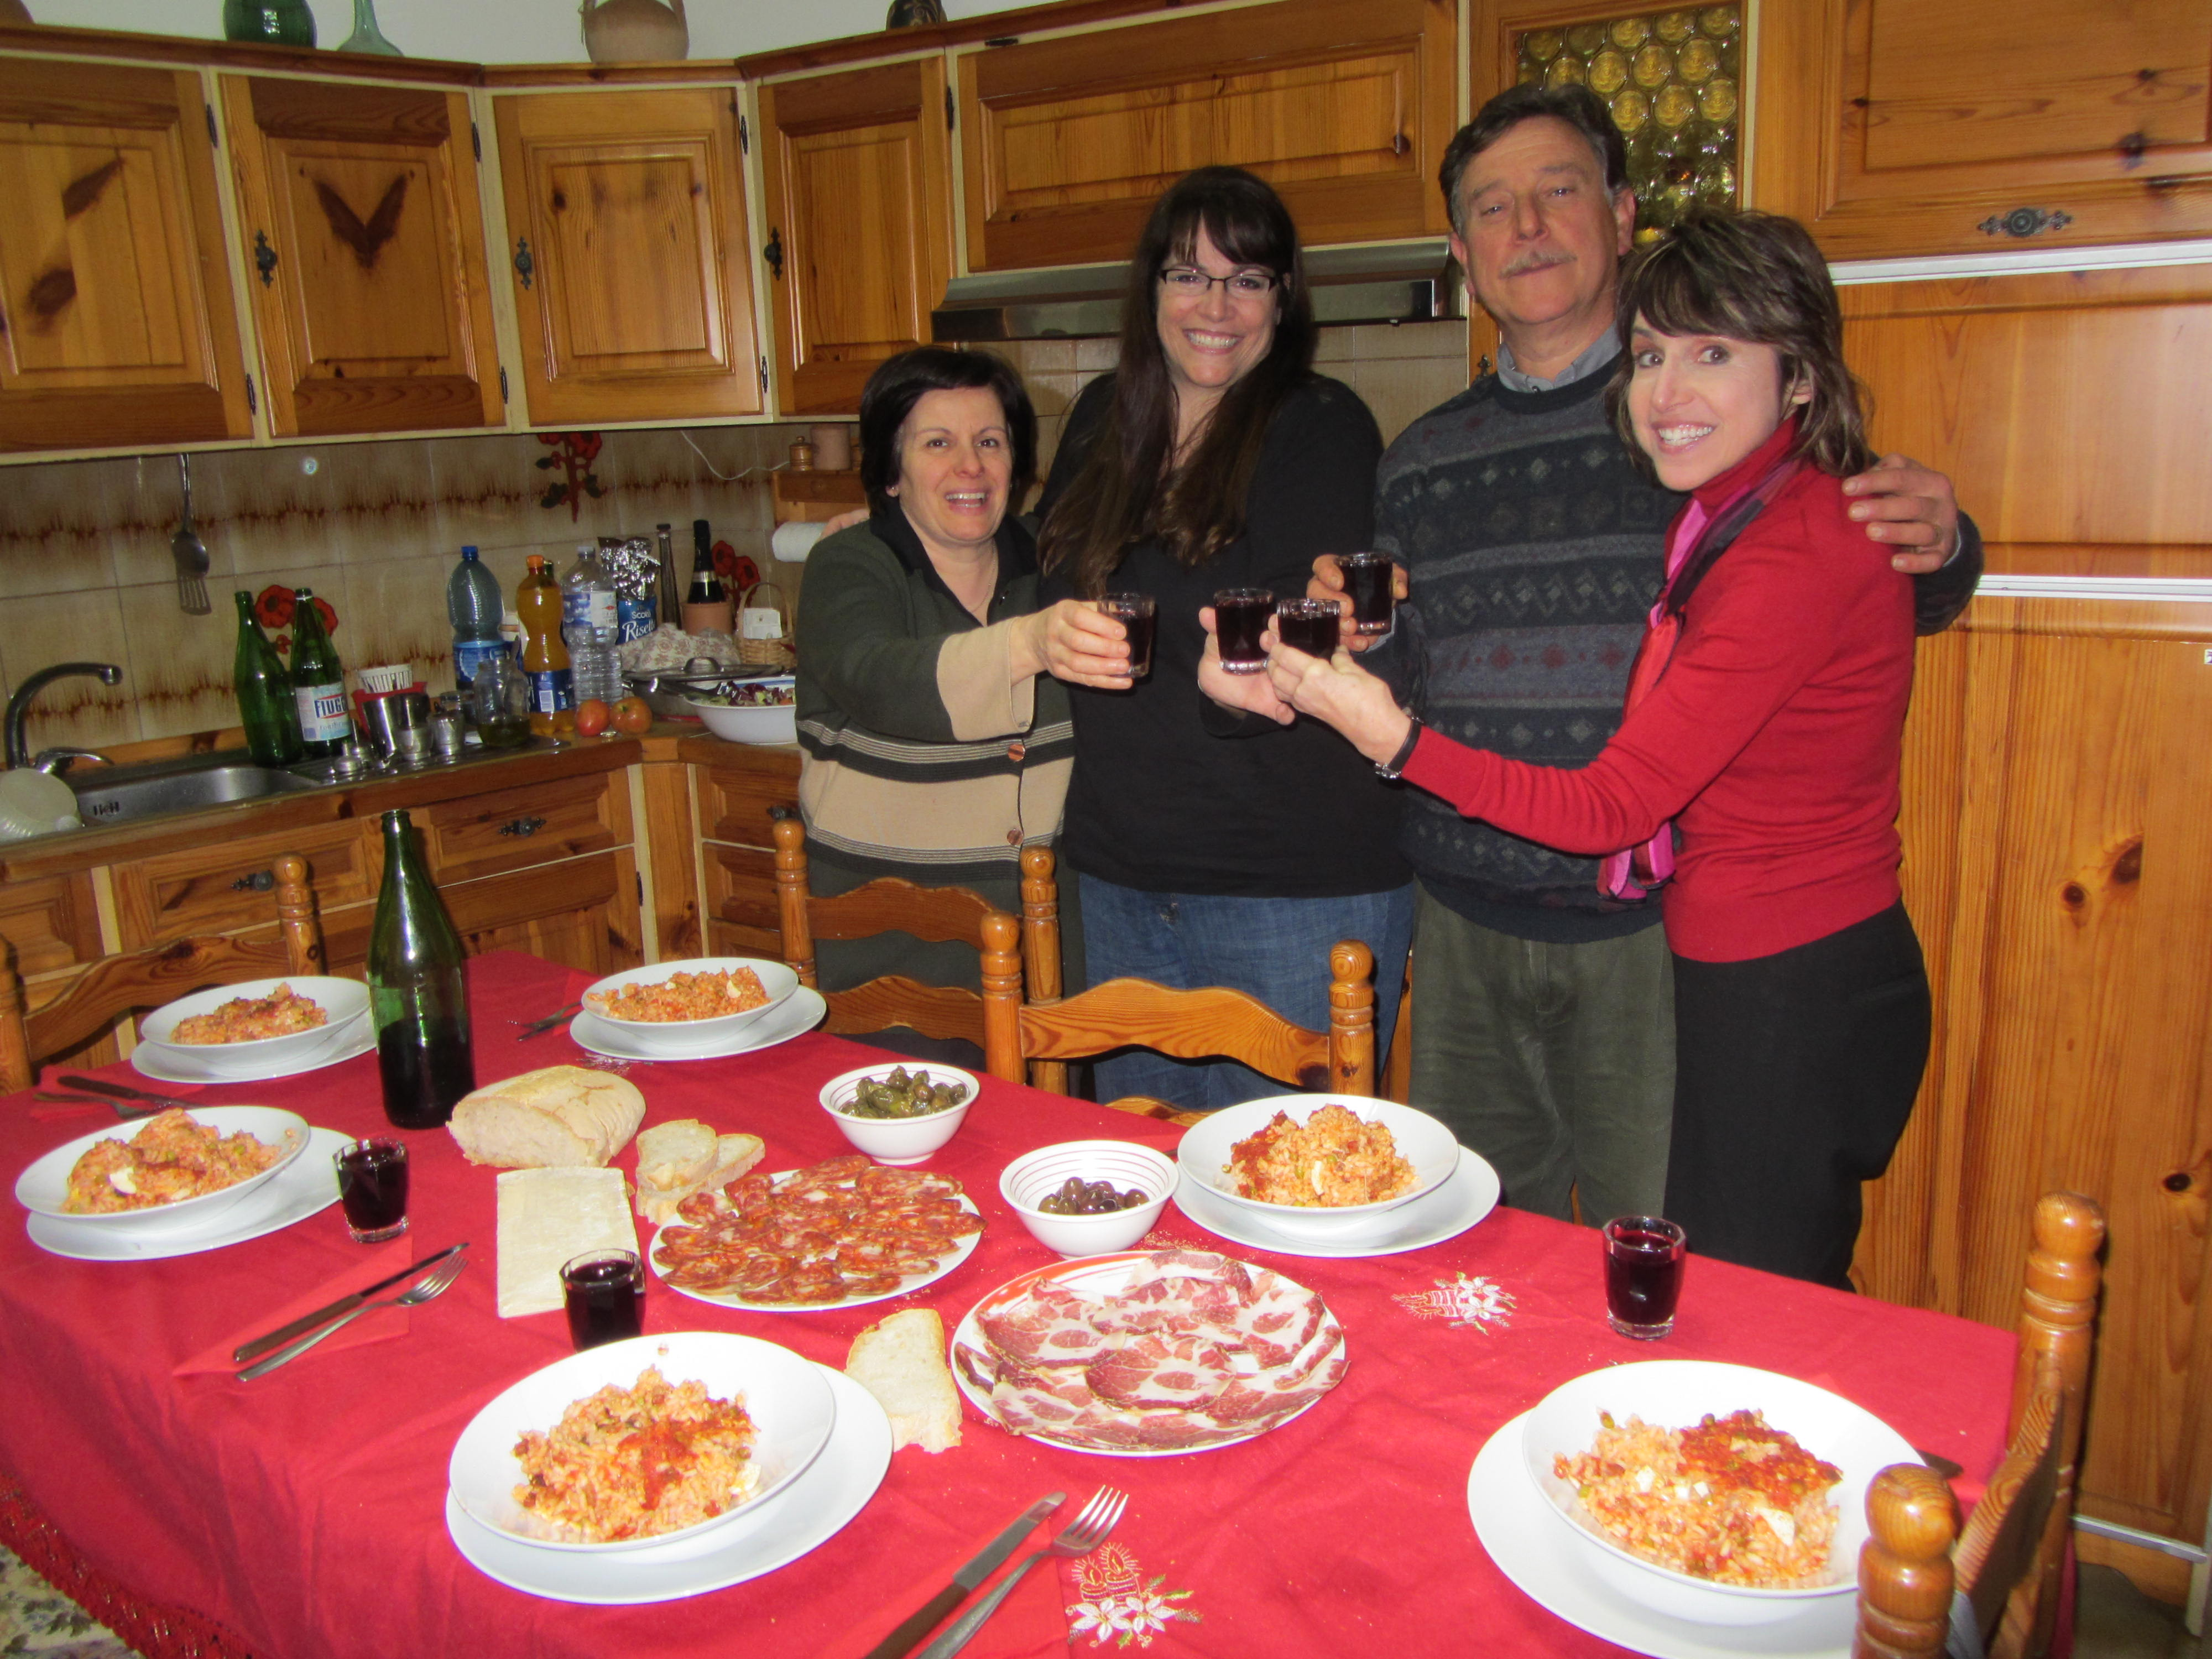 Salute from Enzo's table, Motta Sata Lucia, Italy